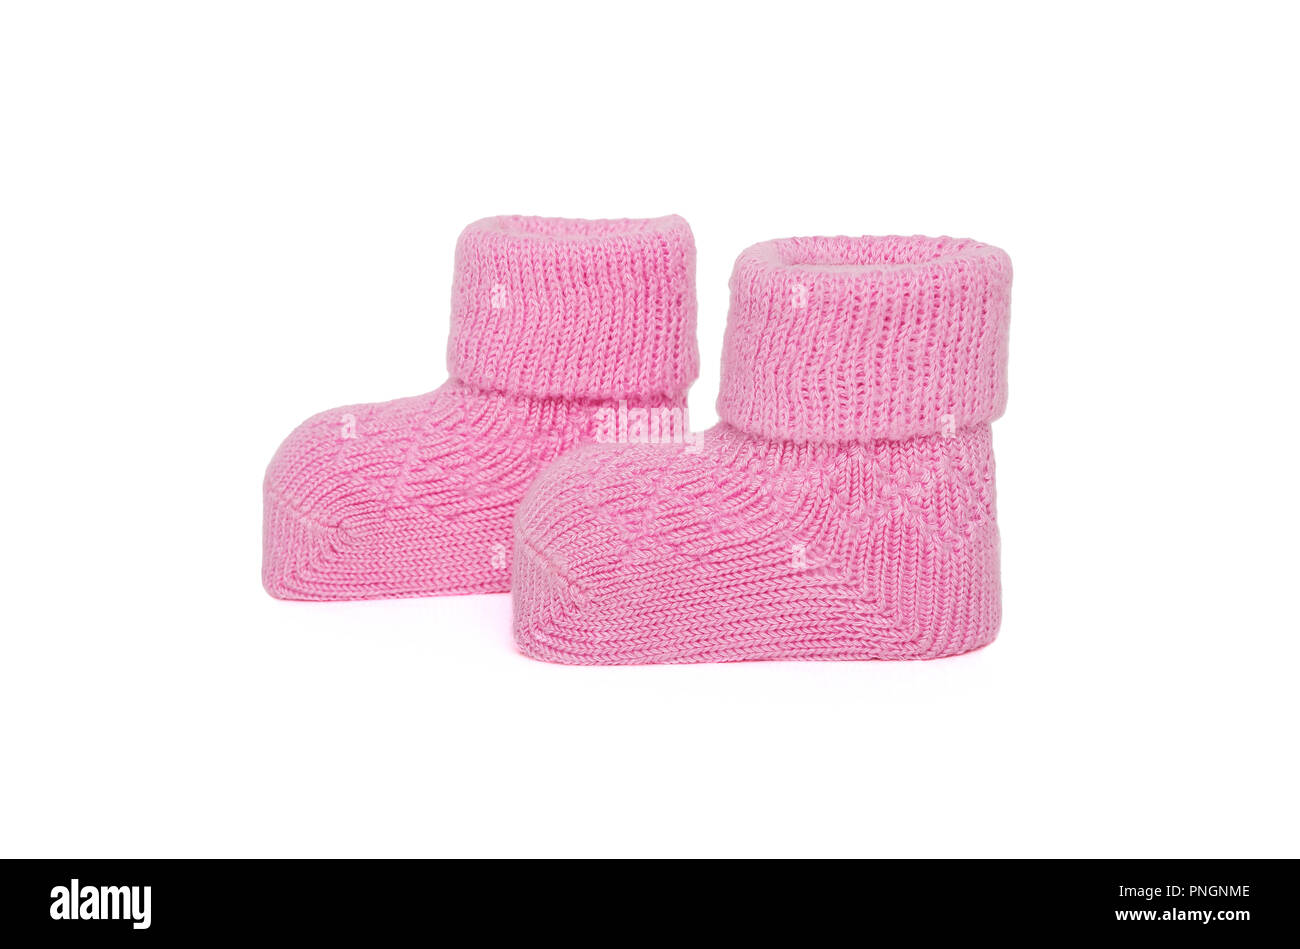 Pink knitted baby socks for girls. Close-up. - Stock Image